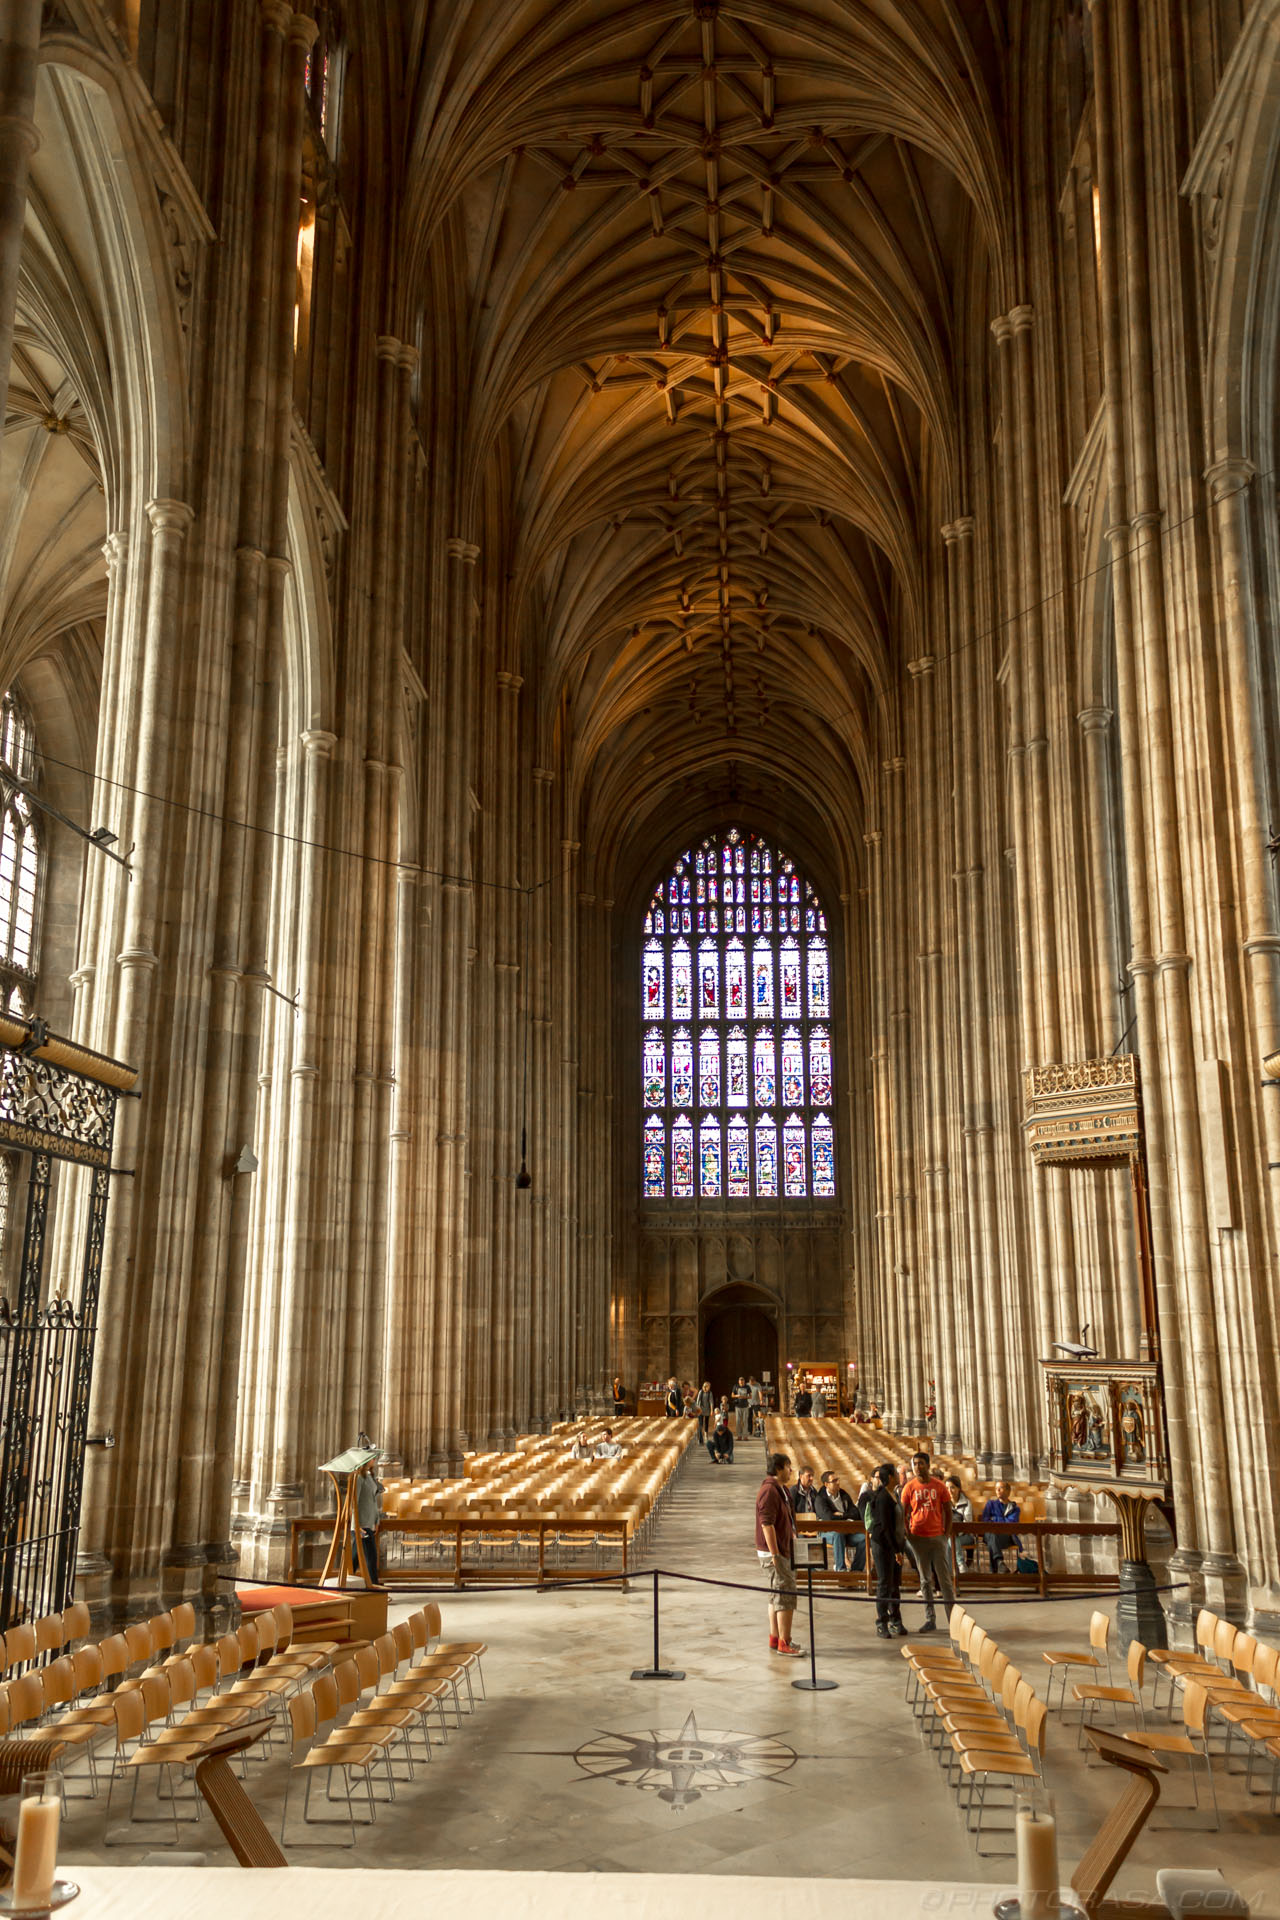 http://photorasa.com/canterbury-cathedral/the-nave/